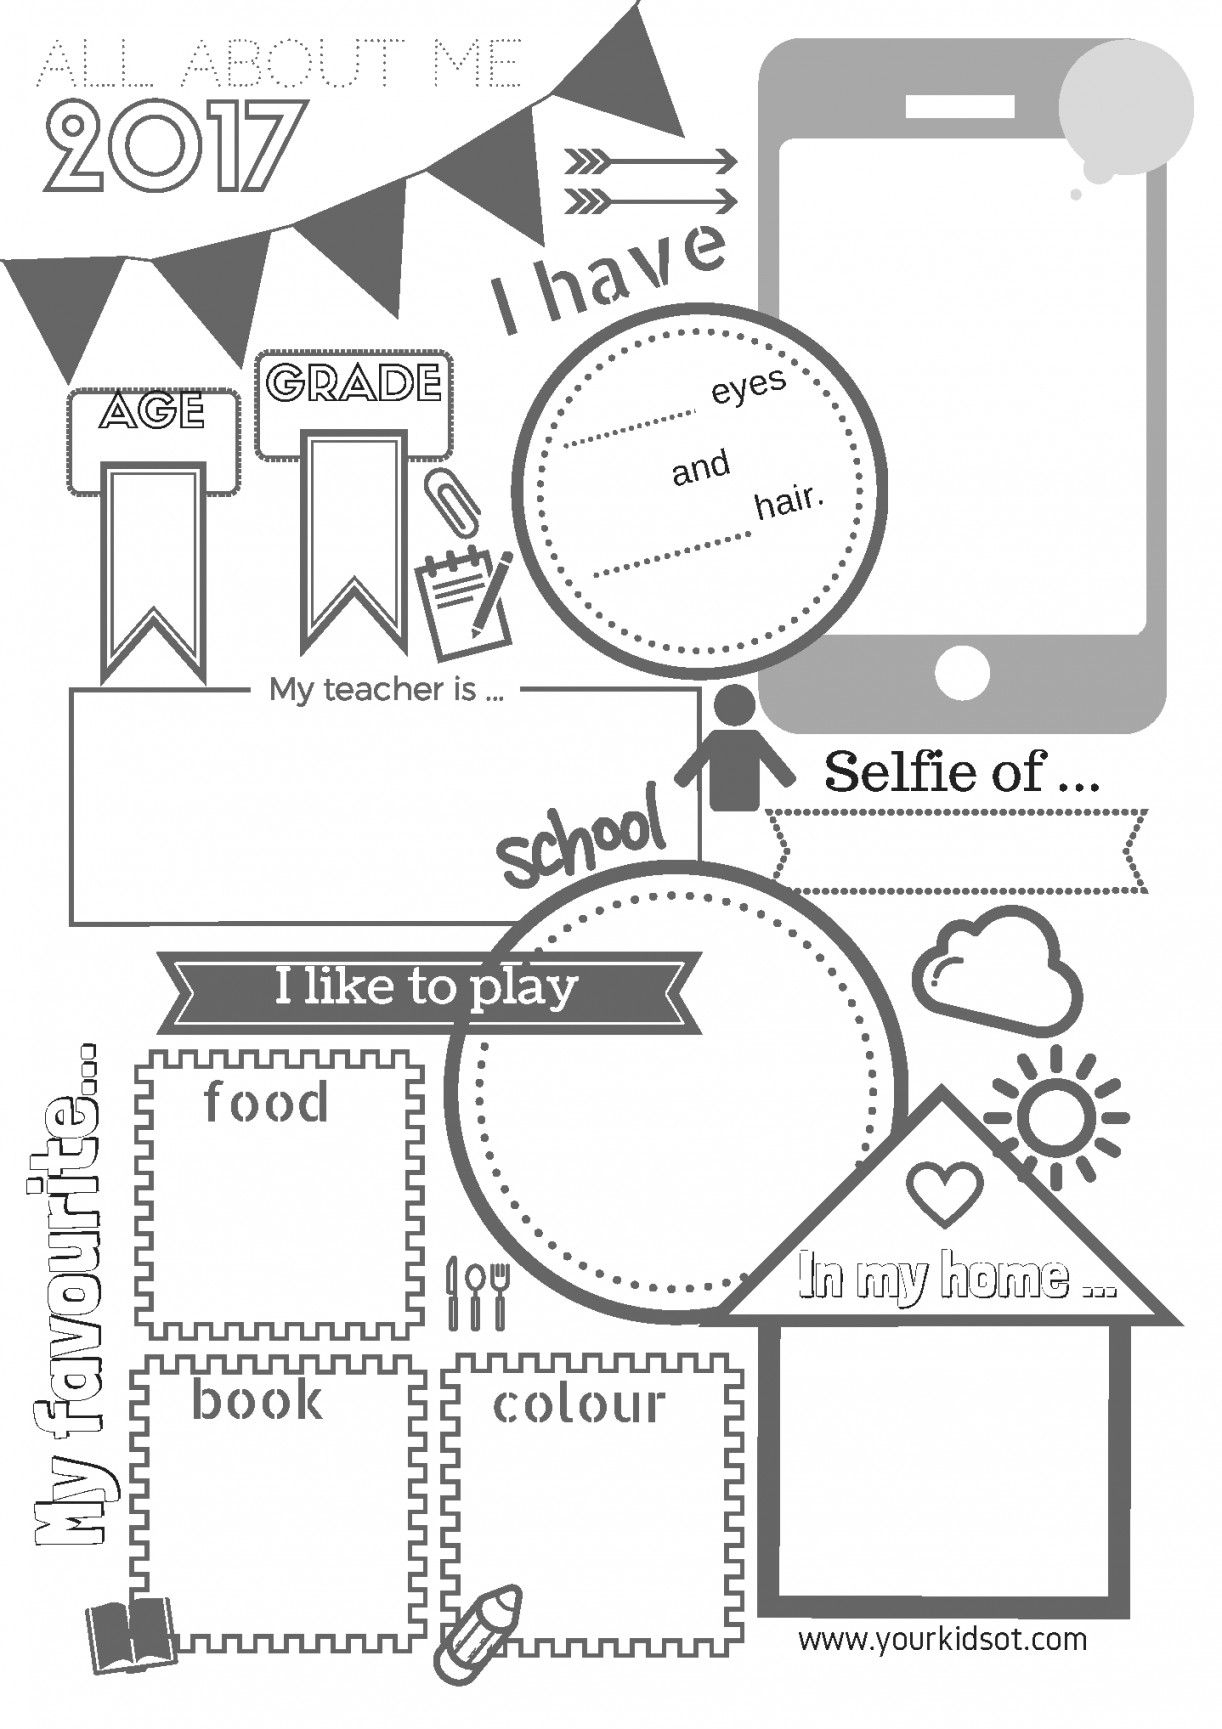 Free Printable All About Me Worksheet | Lostranquillos - Free Printable All About Me Worksheet